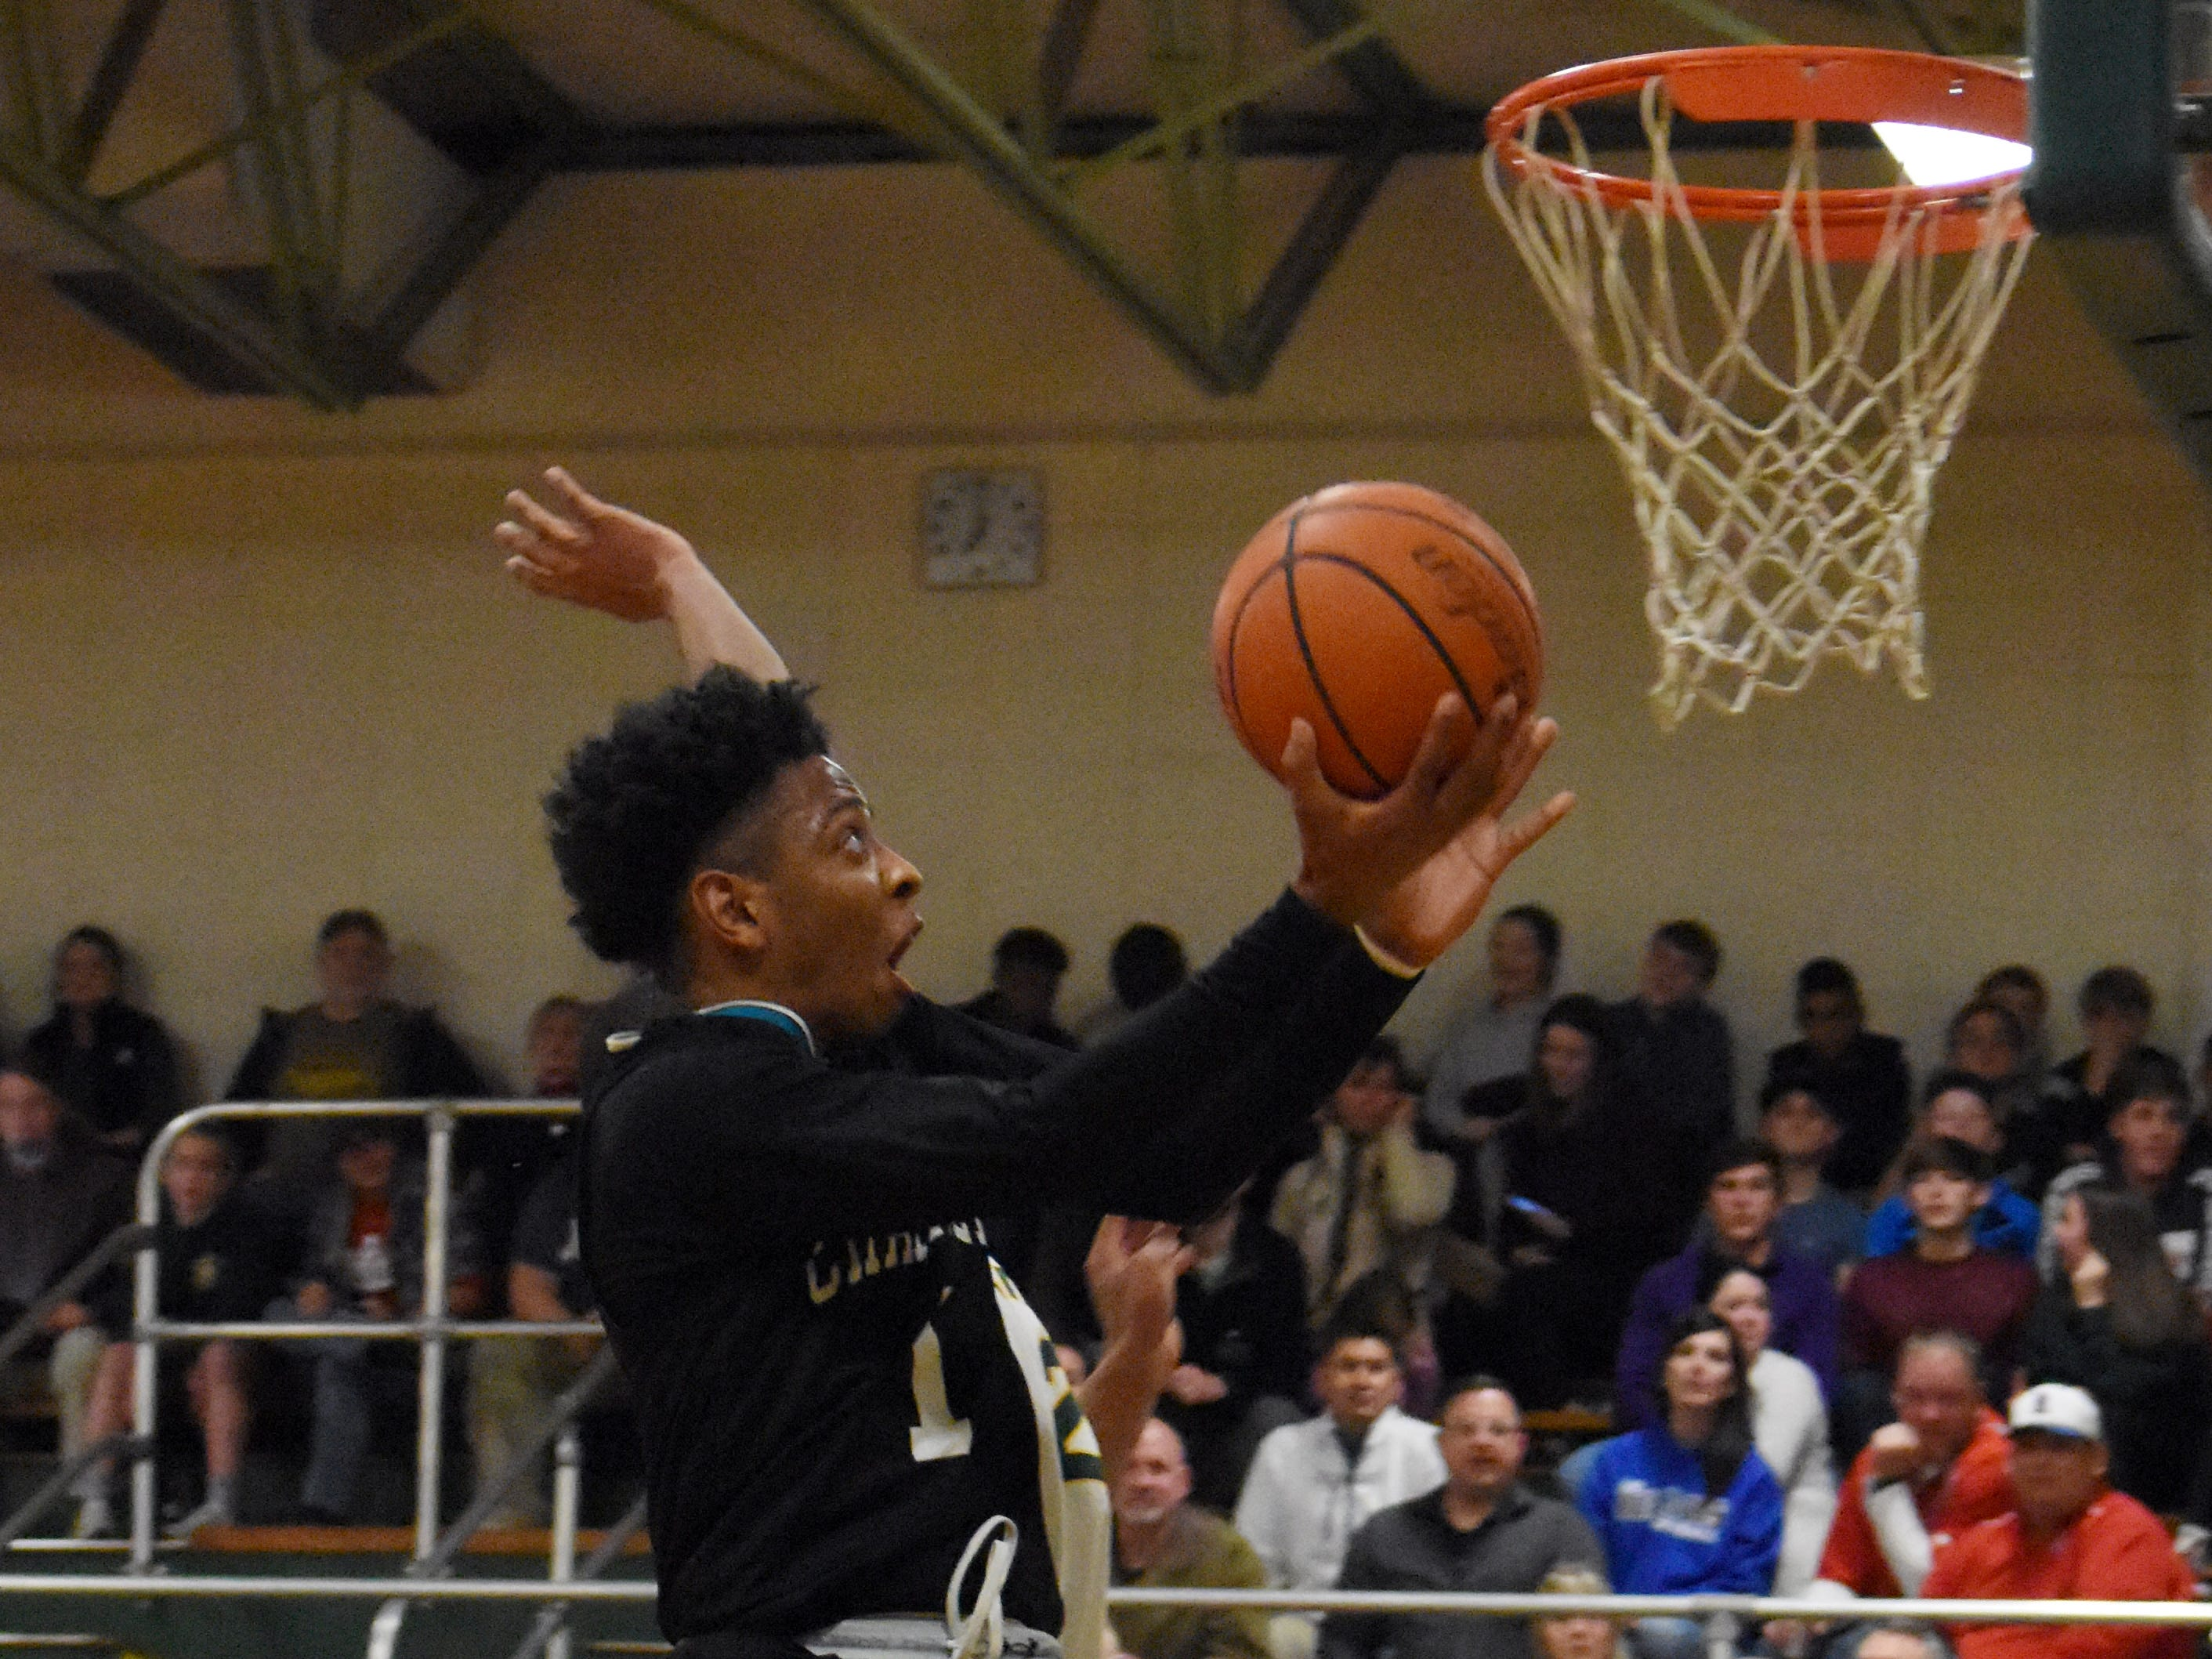 Avoyelles Charter senior Aaron McGhee (1) goes up for a layup against Holy Savior Menard Friday, Feb. 8, 2019. McGhee was named as the District 4-2A MVP for the second straight year.